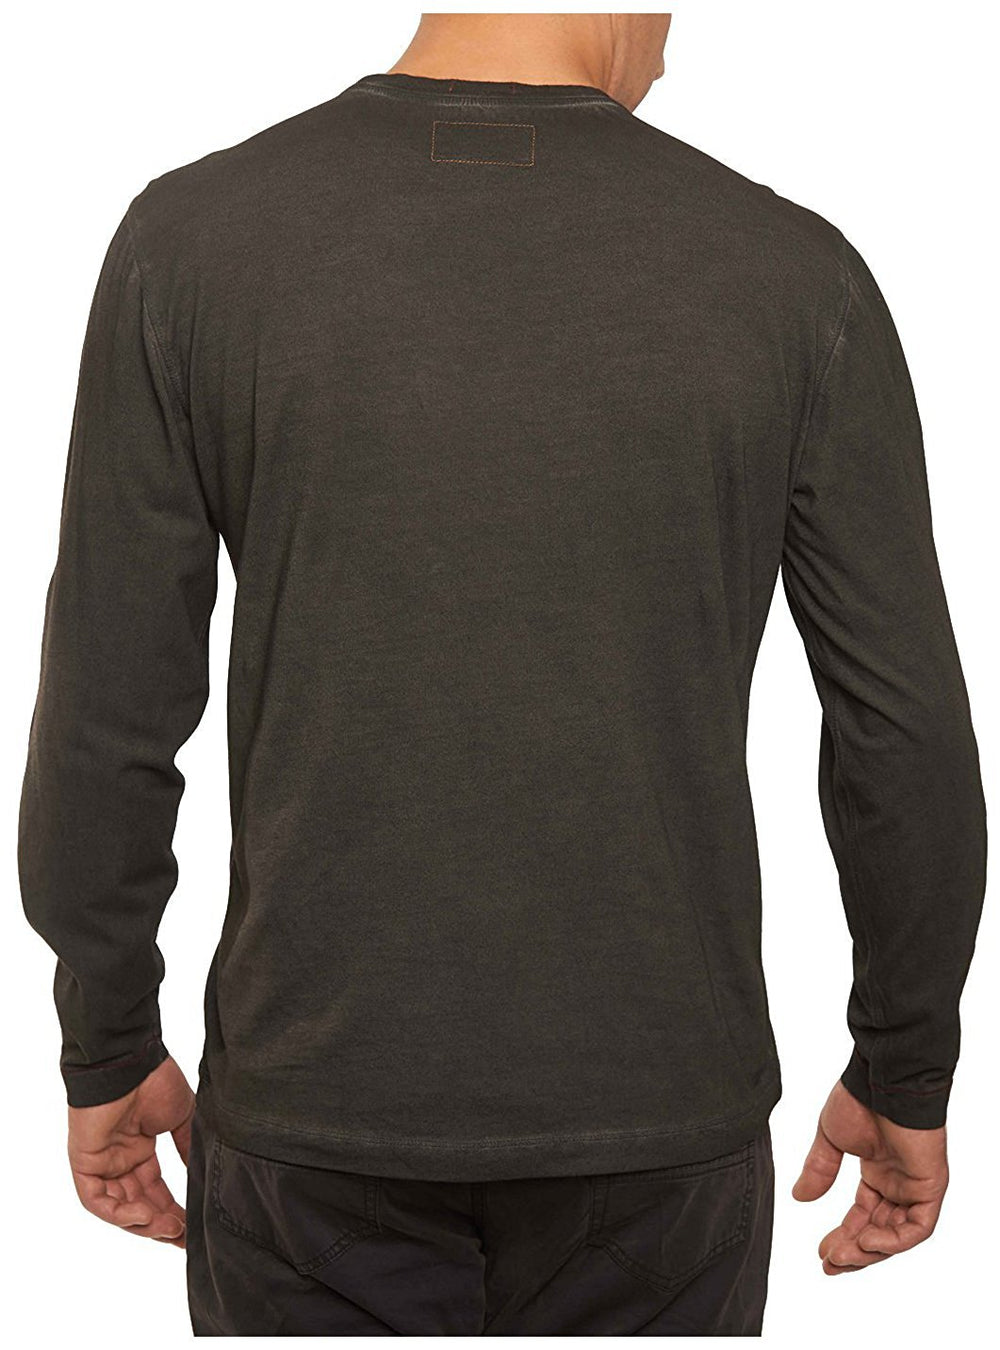 TADD by Thaddeus Men's BING Long Sleeve Spray-Dyed Jersey Crew Neck